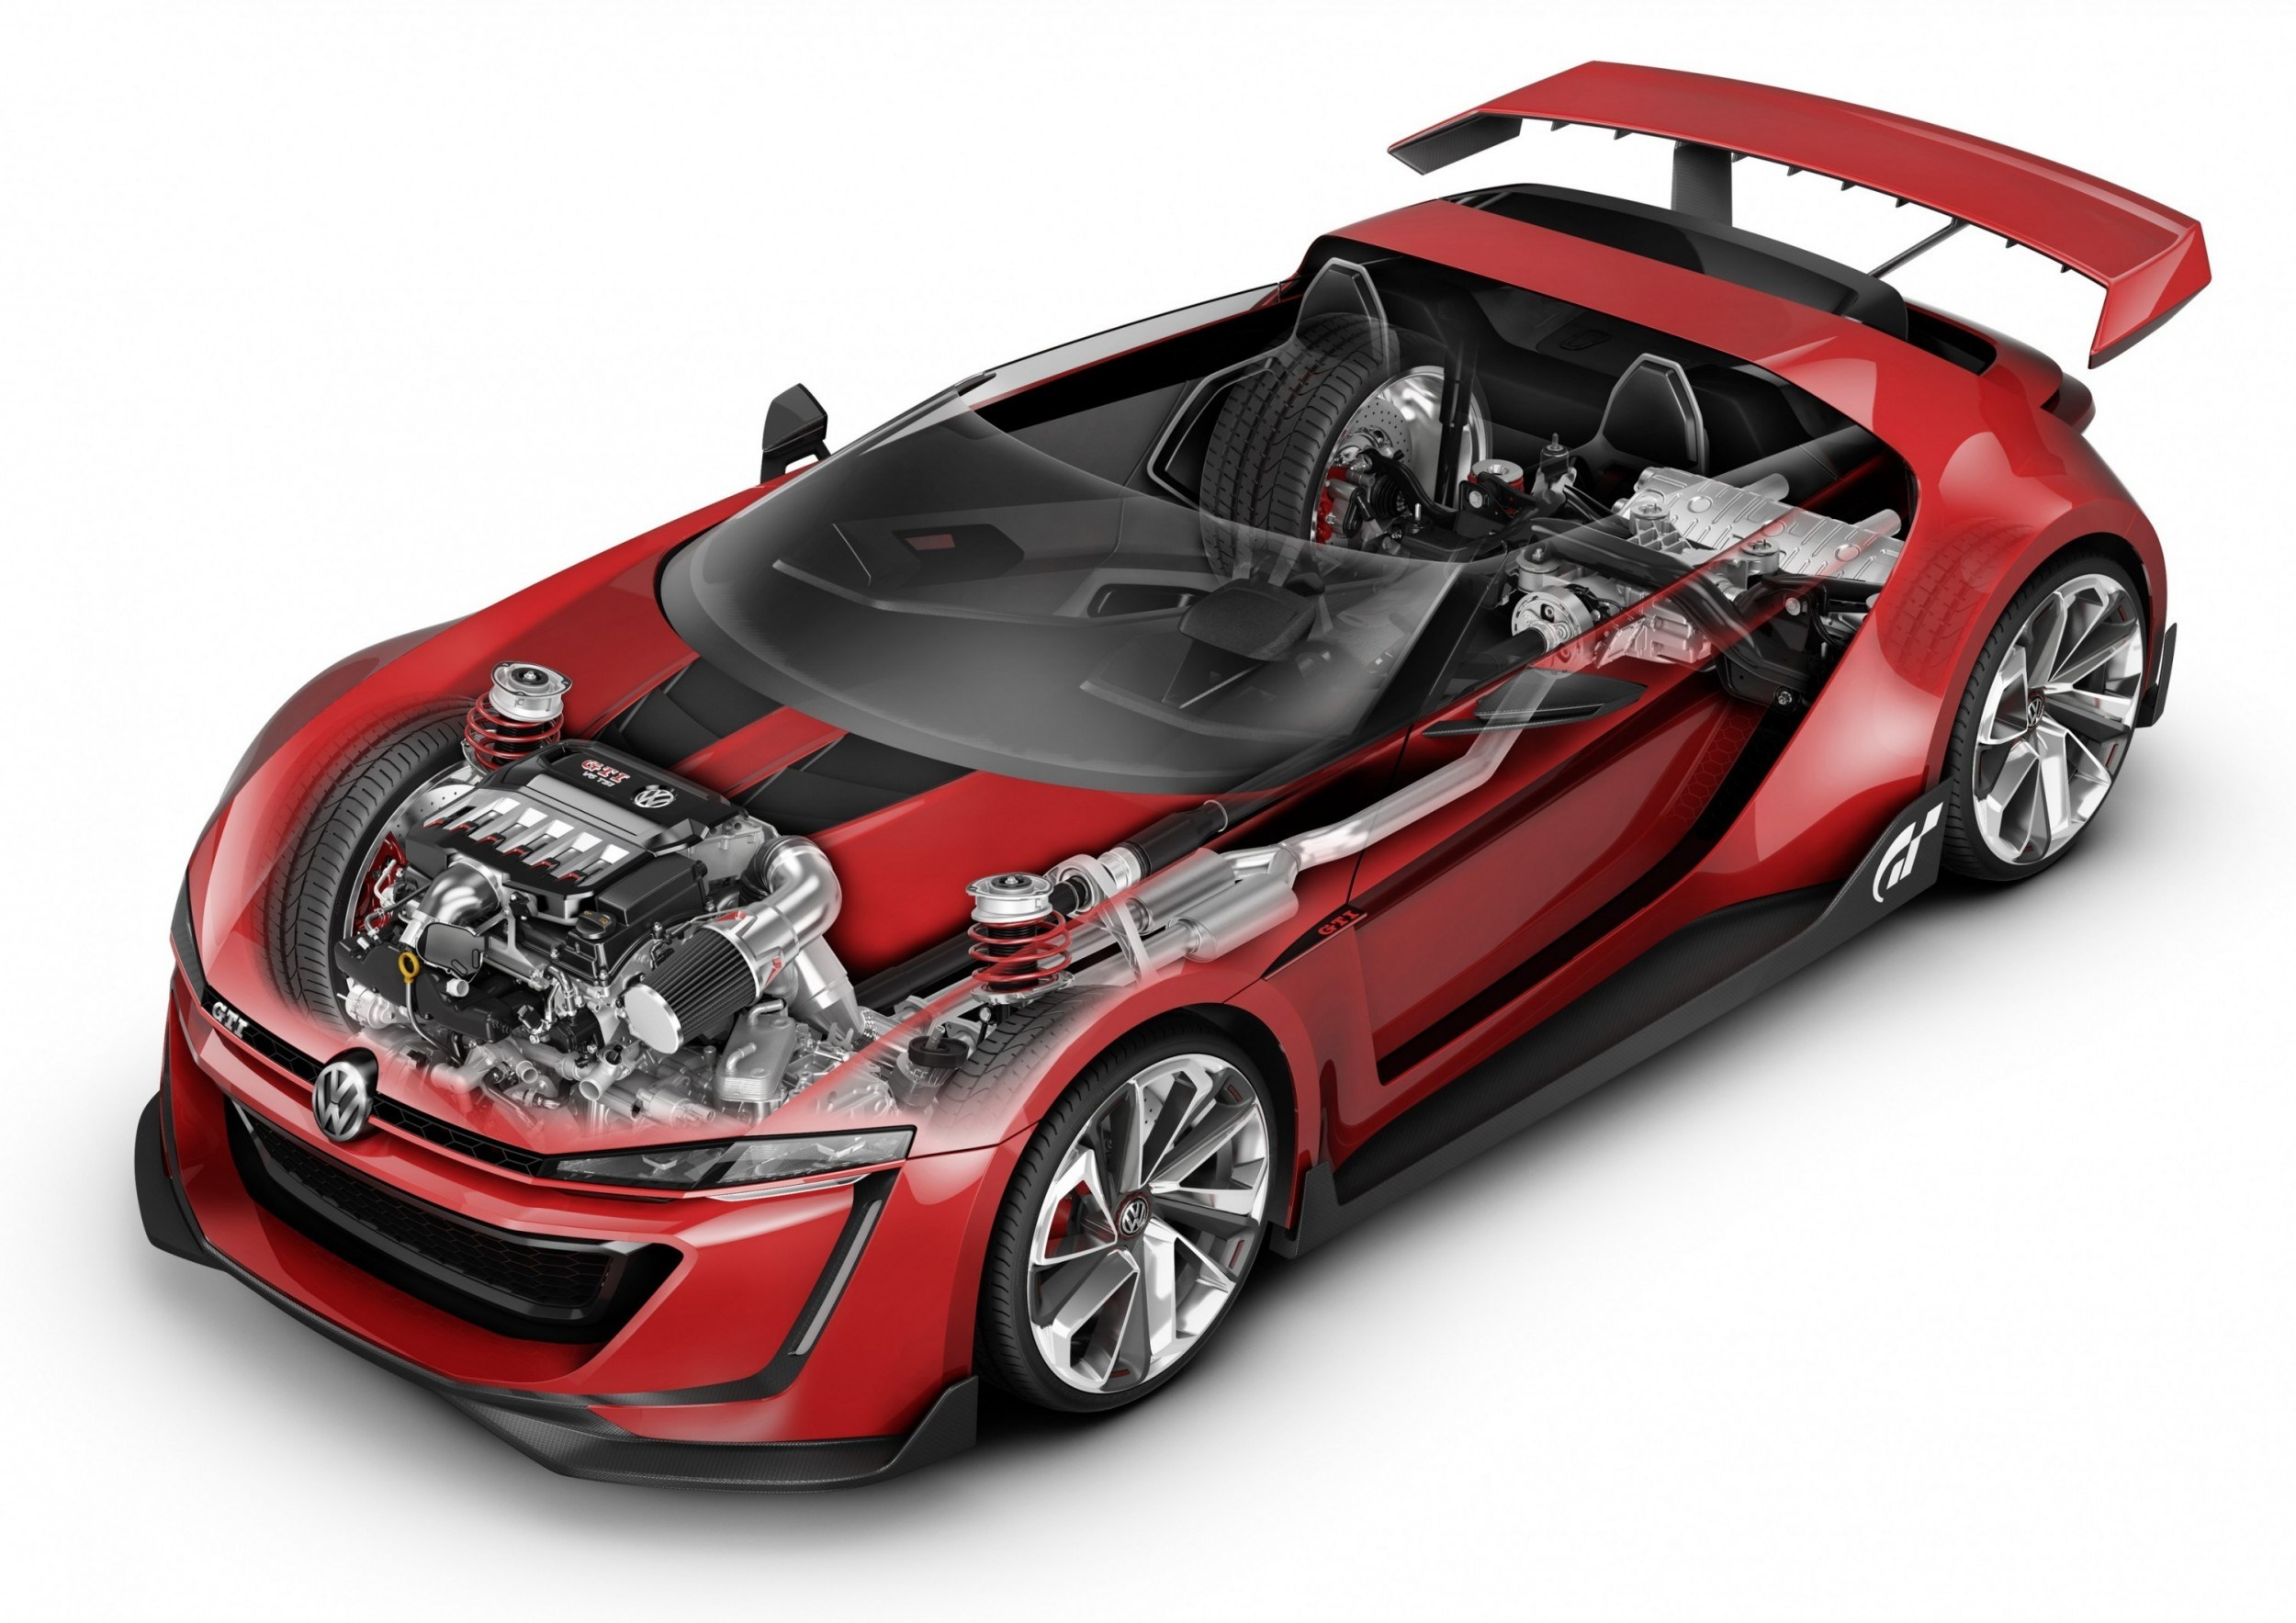 Volkswagen Gti Roadster 2018 >> Vision GT Concept Cars - What Is Left? Teasers From Subaru, Lexus, Honda, Tesla, Aston, Ford, GM...